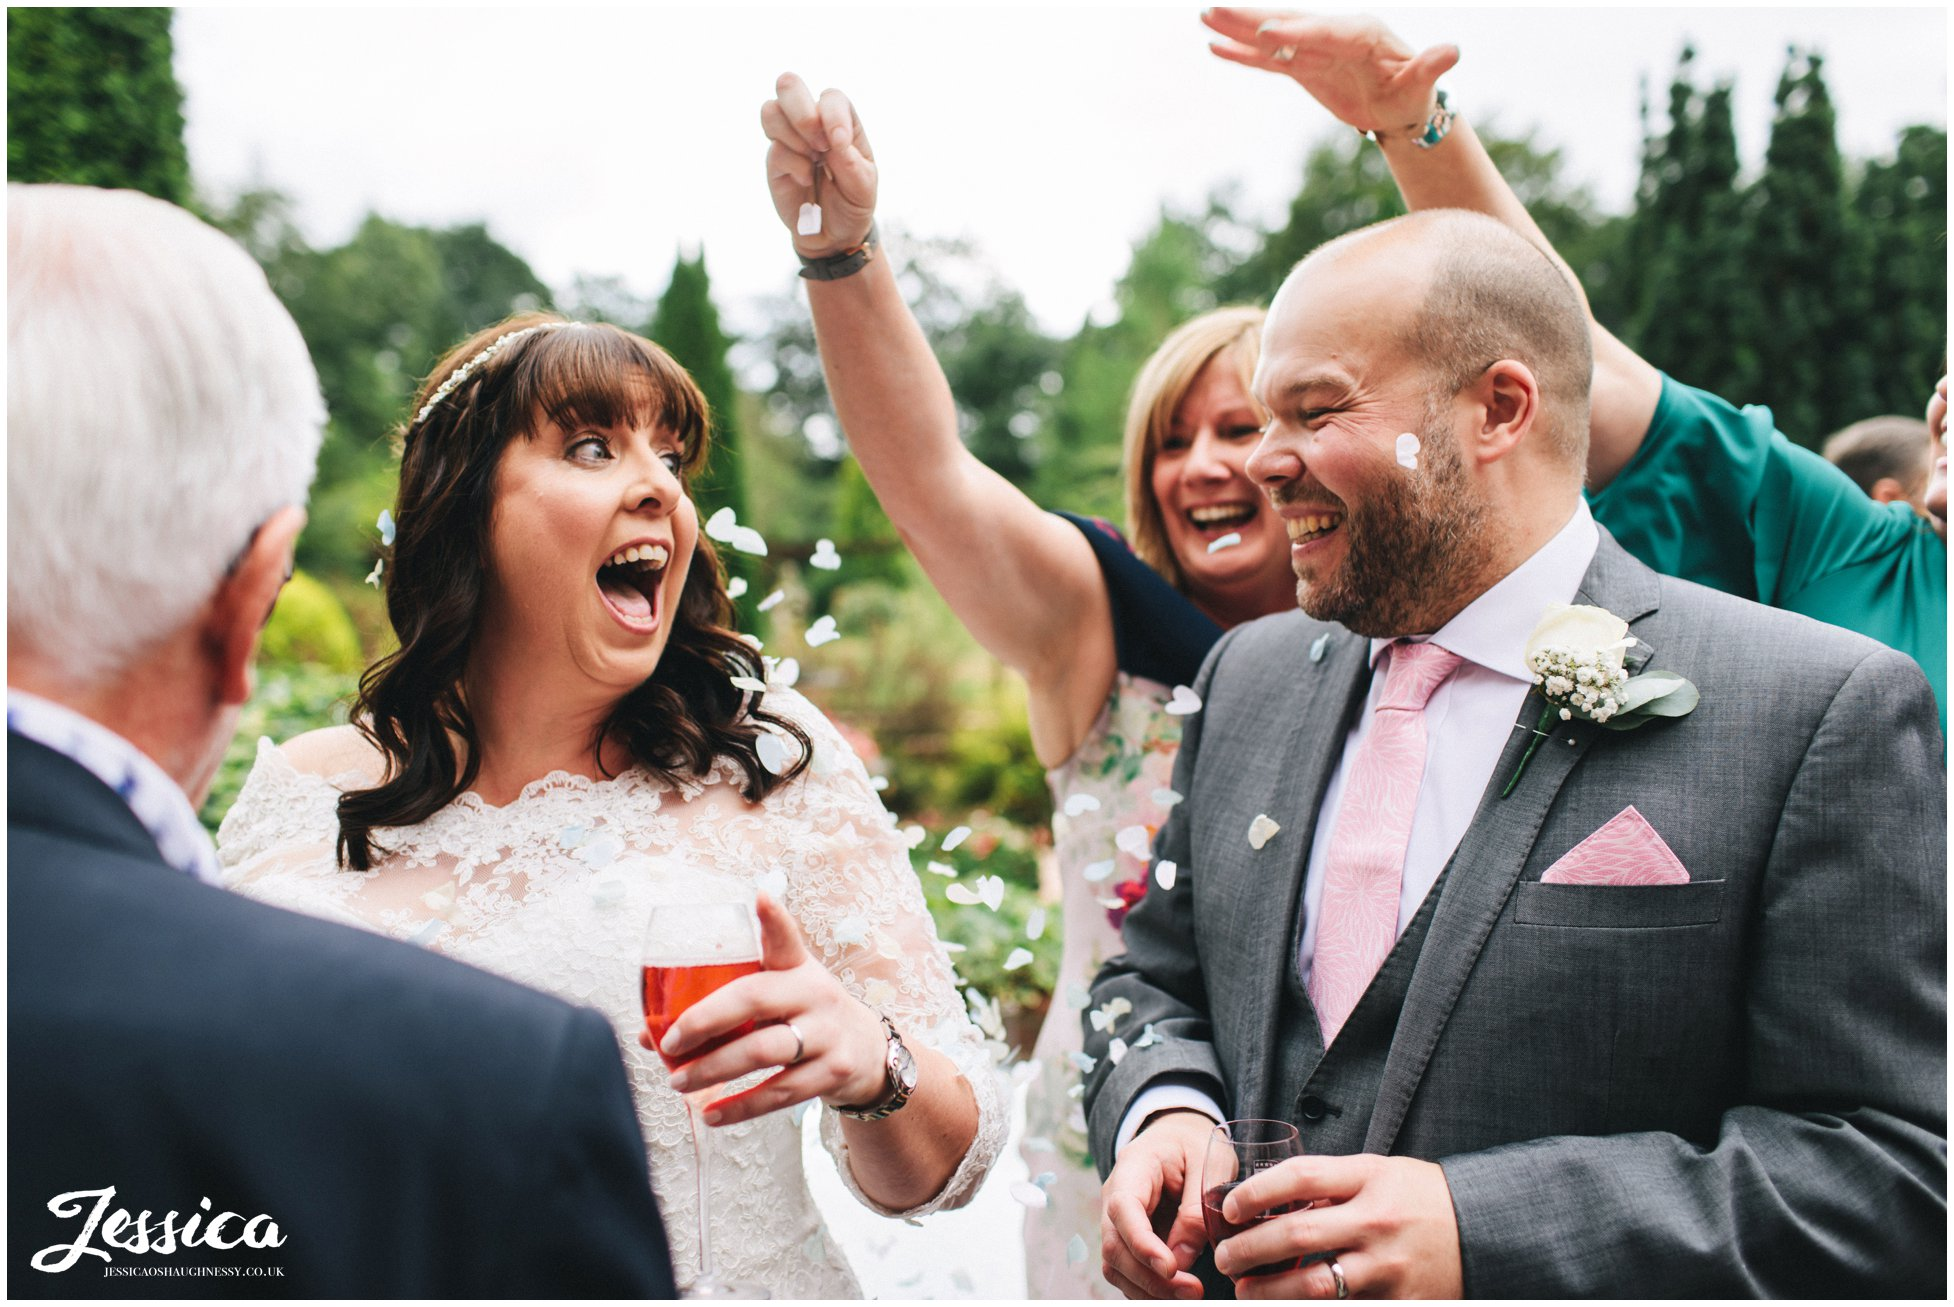 guests surprise the couple by showering them in confetti